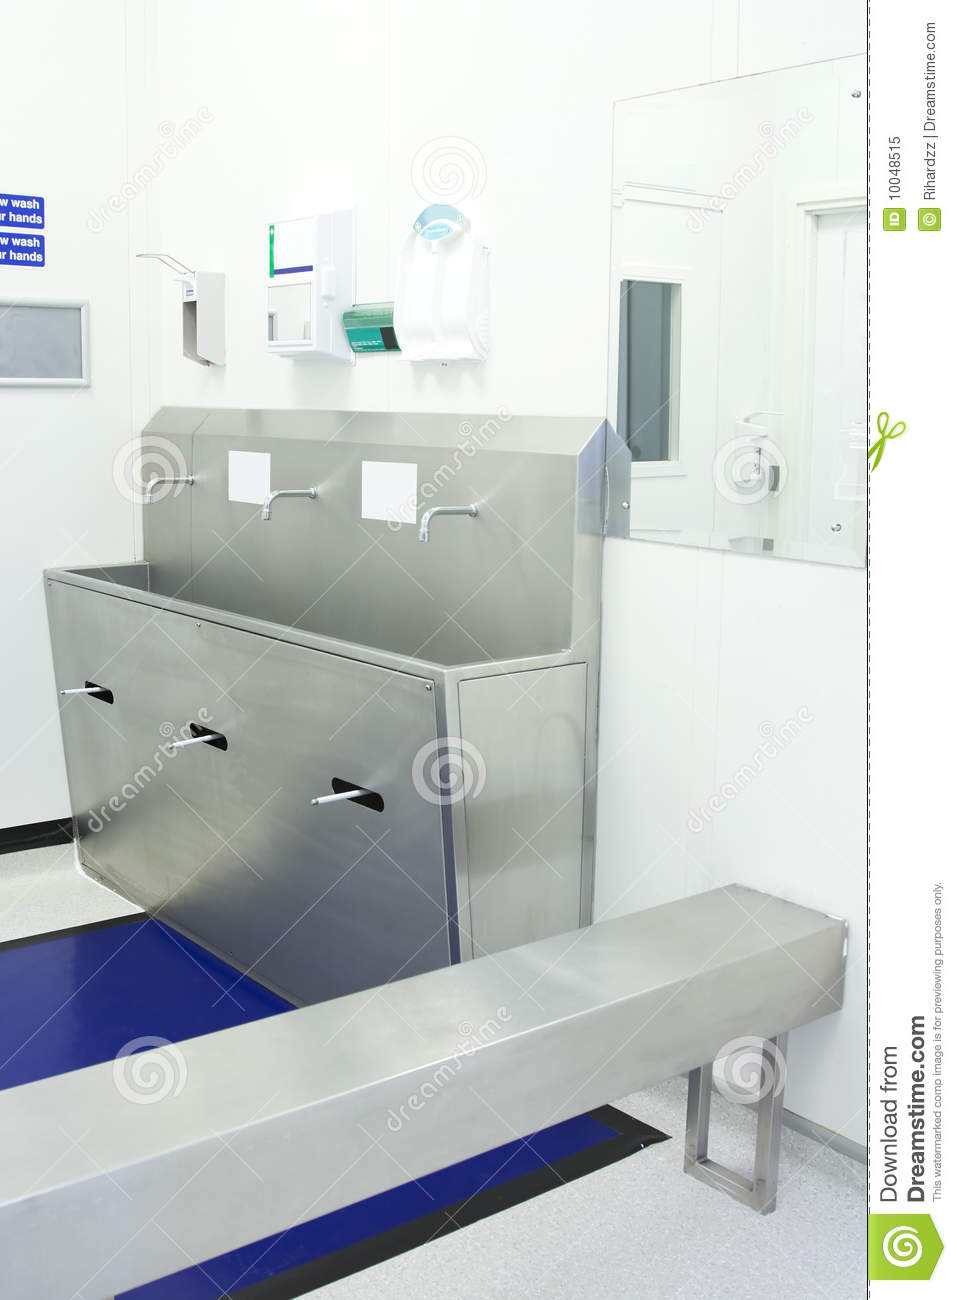 Gowning Area Of Clean Room Royalty Free Stock Photo